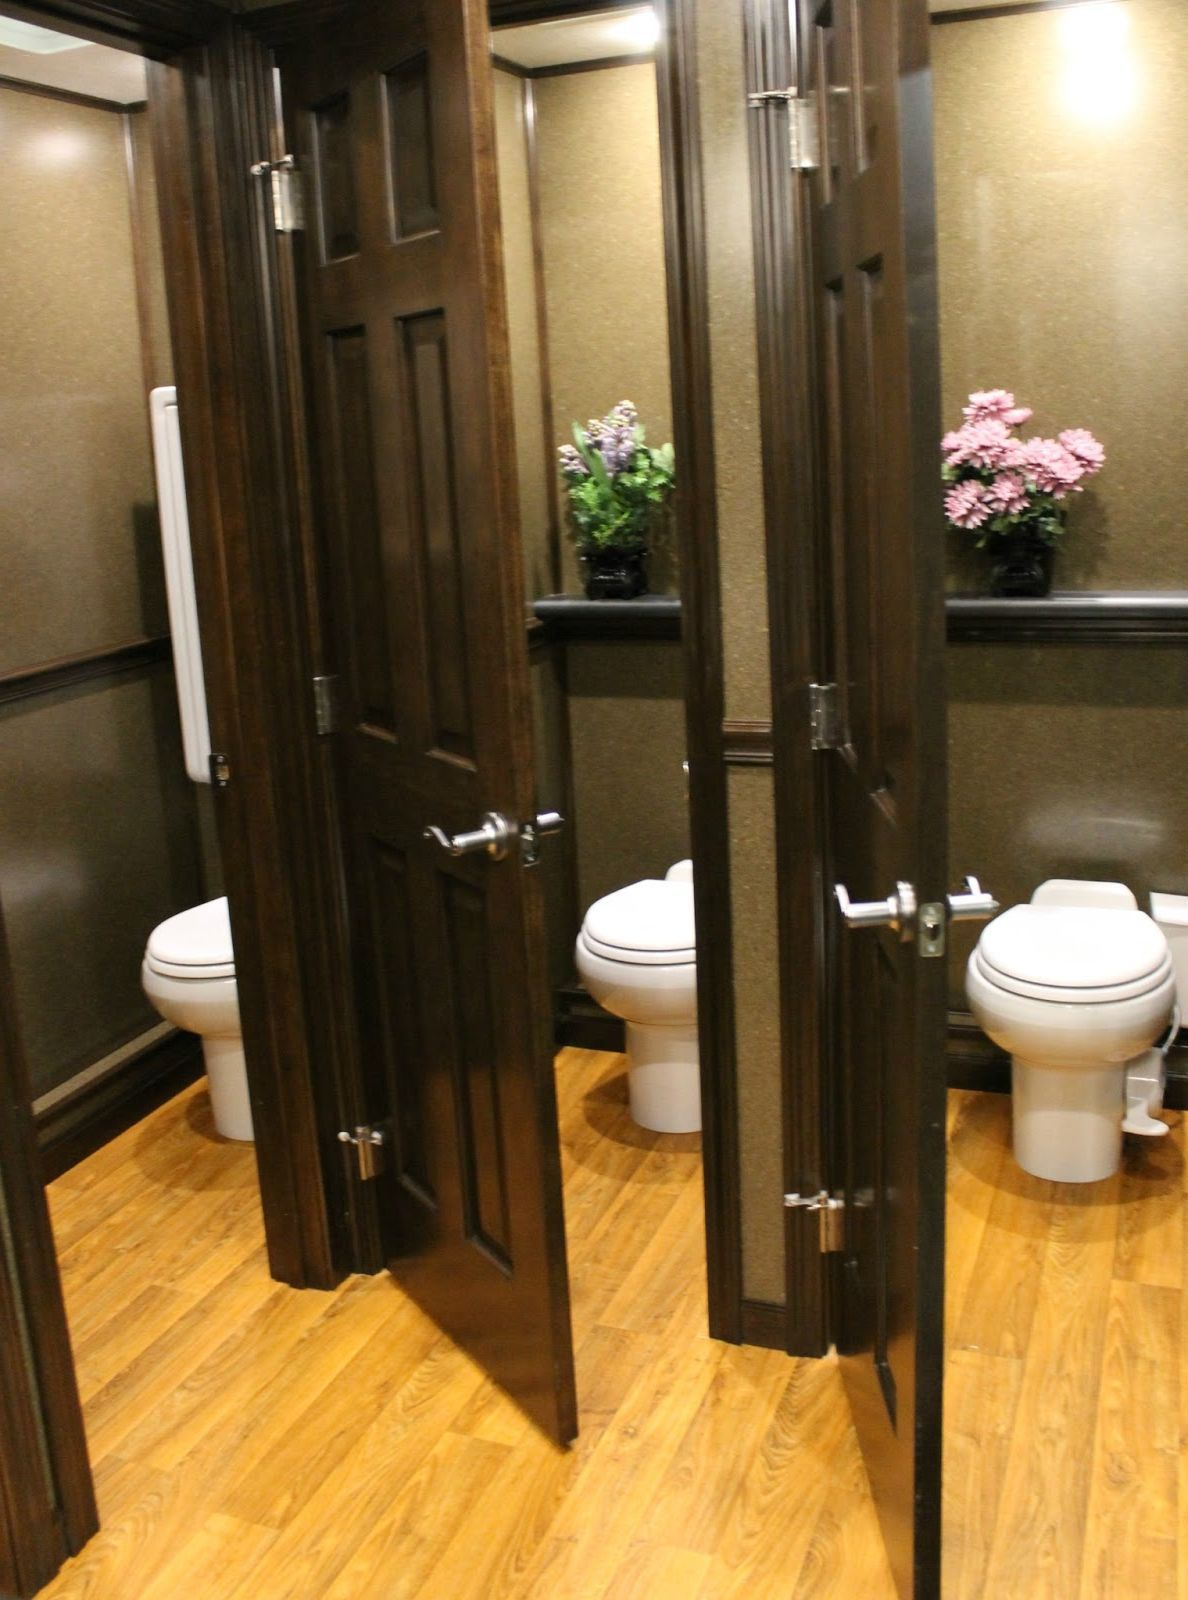 Hotel Public Restroom Design Google Search Event Center Ideas Pinterest Cozy Google And